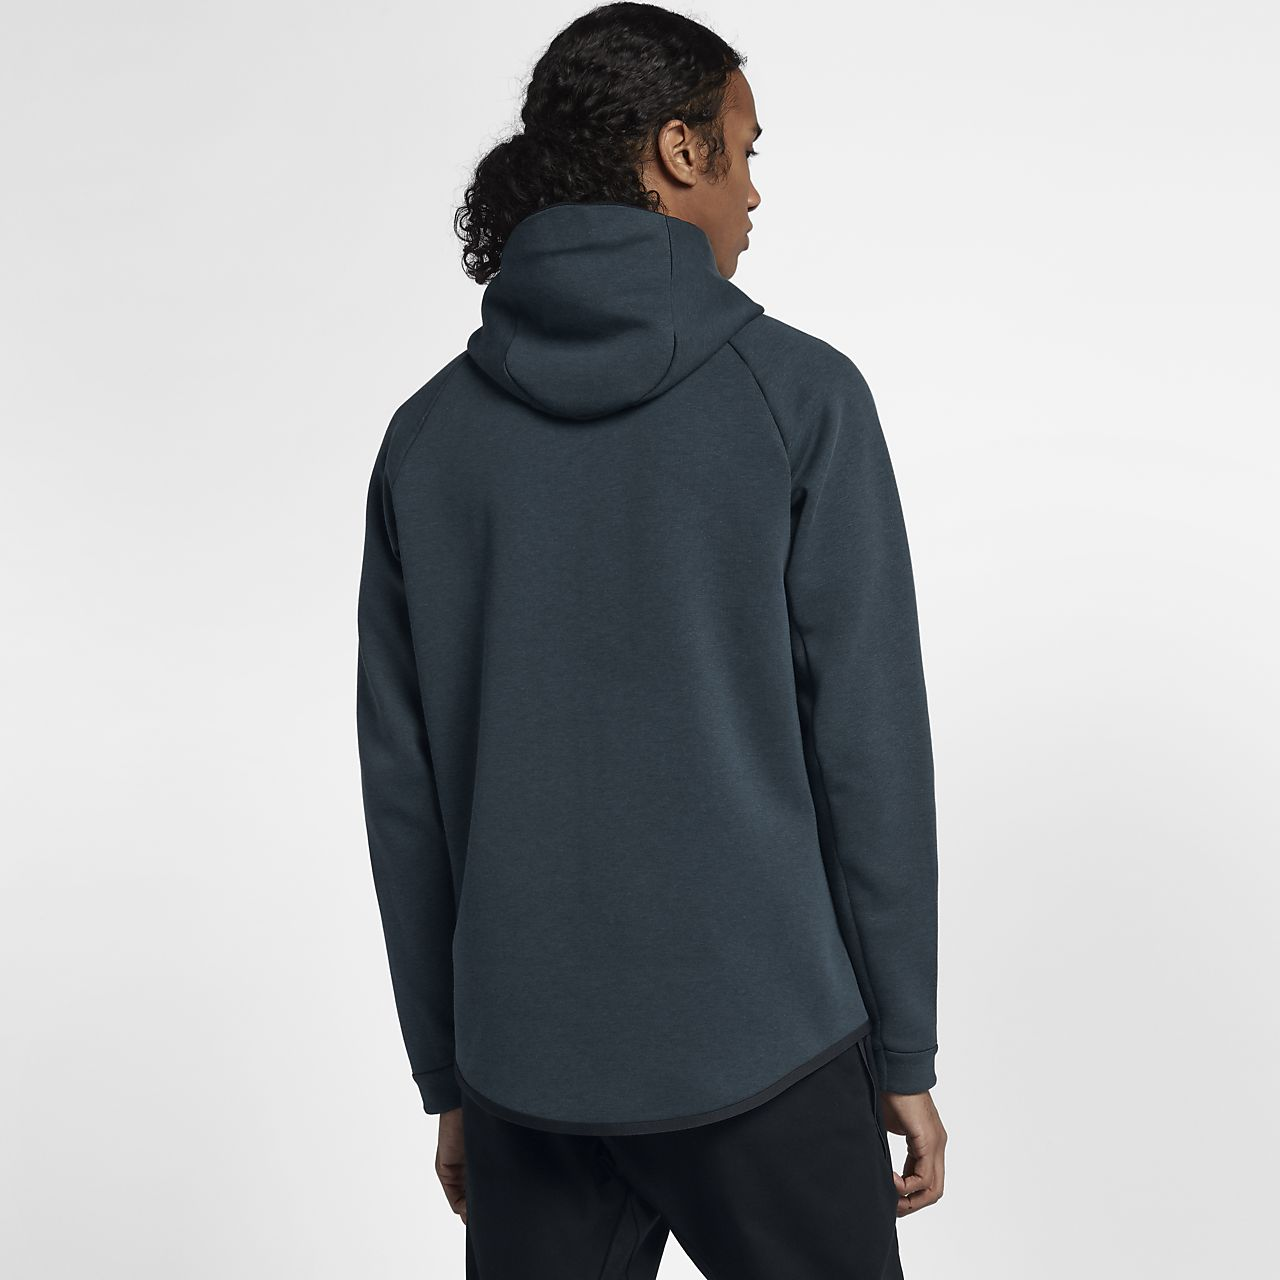 nike sportswear tech fleece windrunner men 39 s full zip. Black Bedroom Furniture Sets. Home Design Ideas